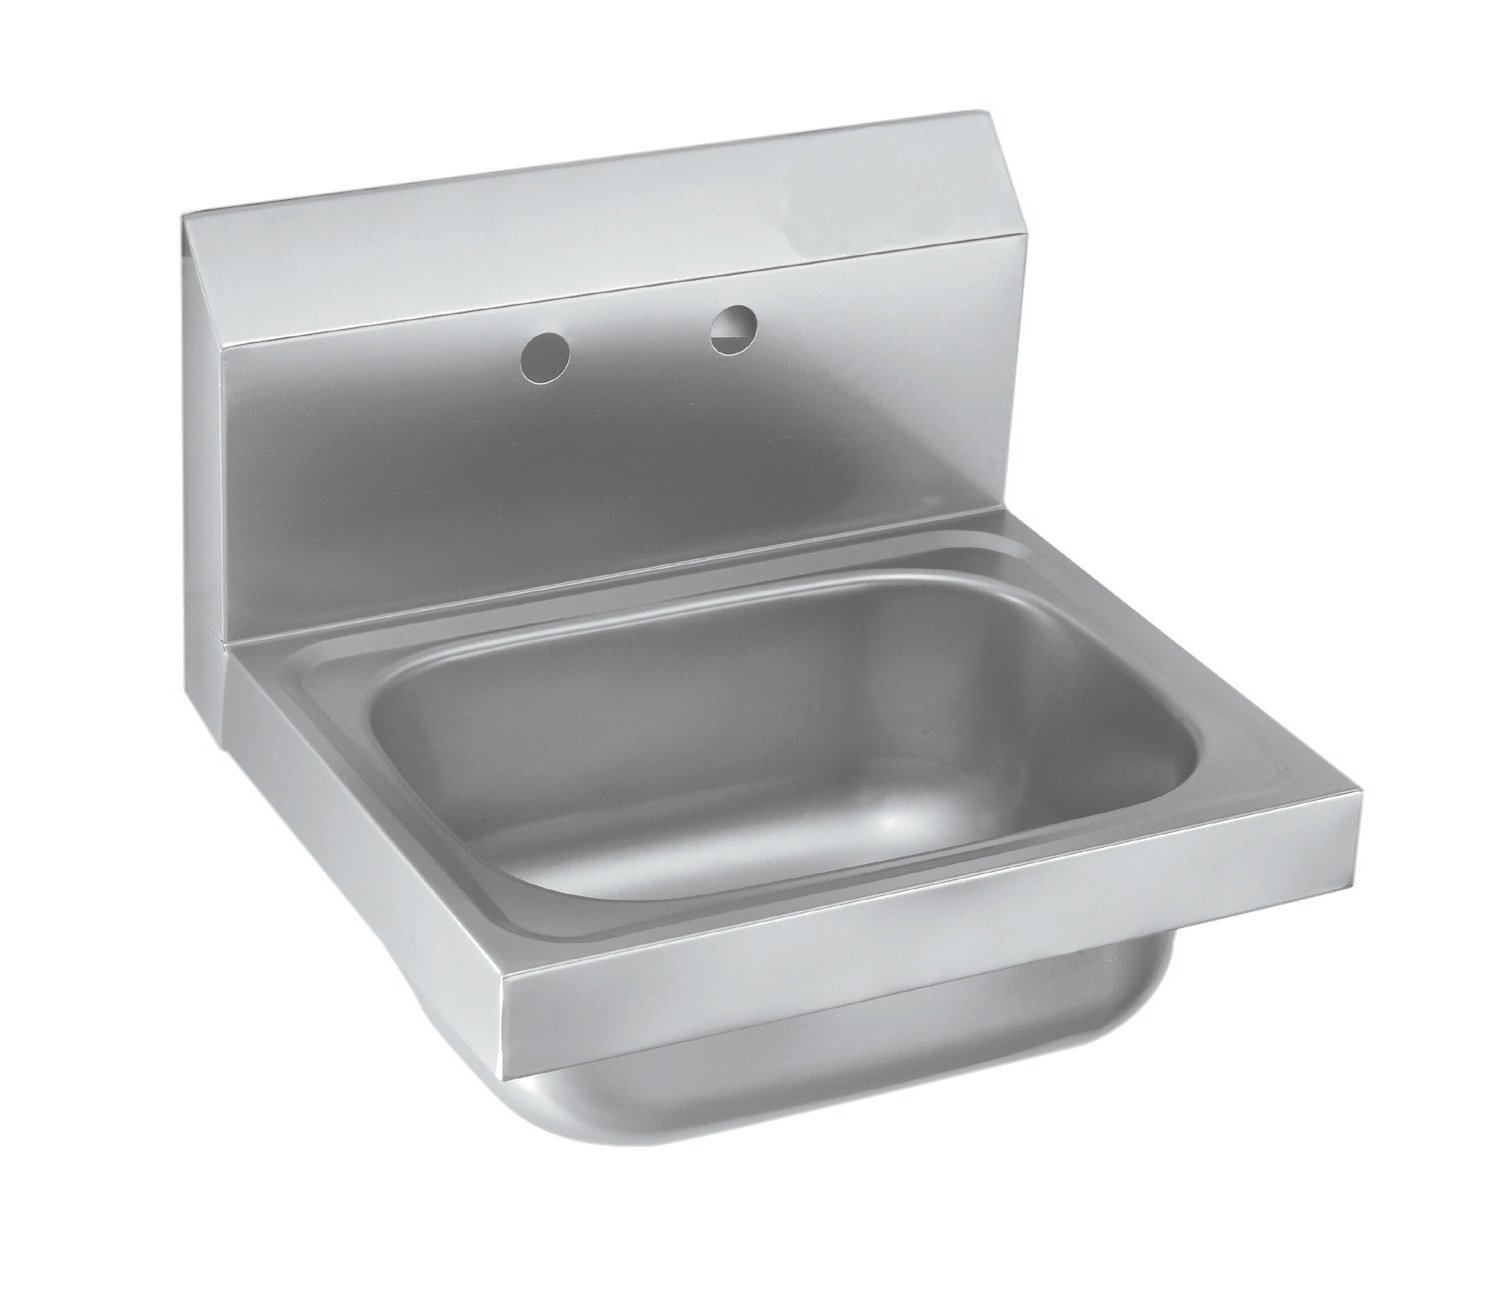 EQ Kitchen Line Stainless Steel Commercial Compartment Sink, 17'' L x 15'' W x 13'' H